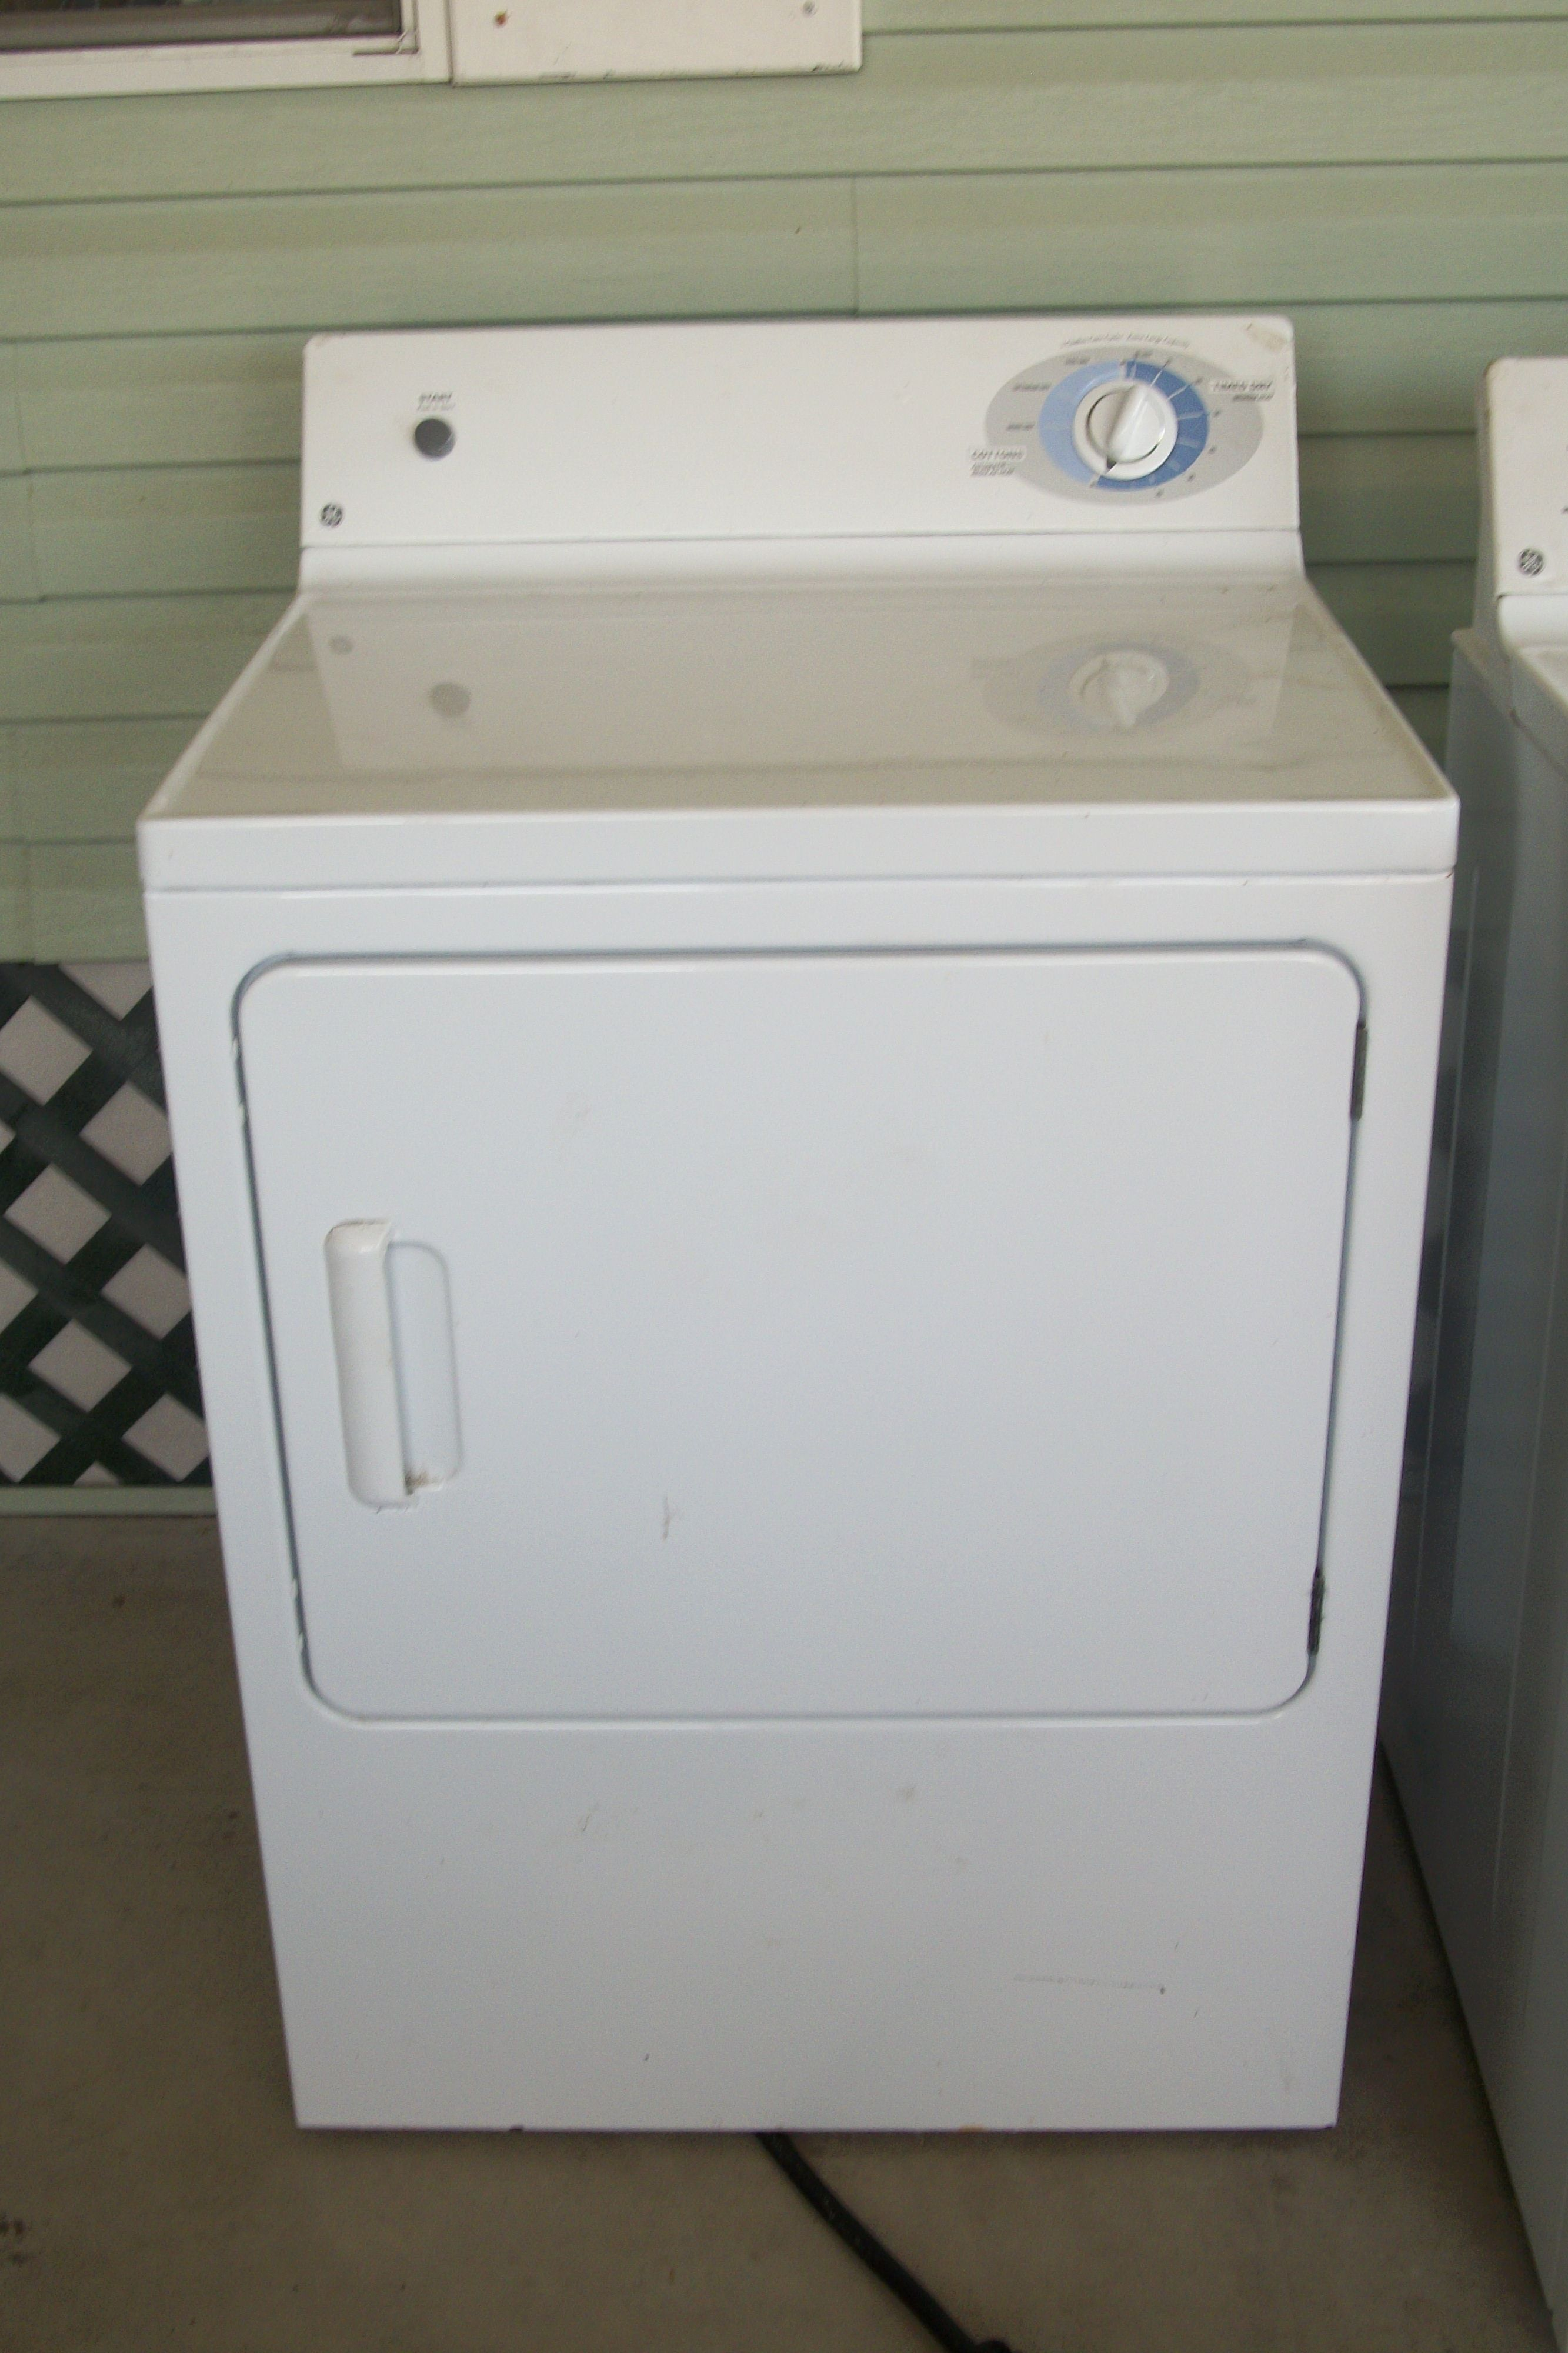 Ge Washer And Dryer In Kraft S Garage Sale In Plant City Fl For 200 00 Ge Washer And Dryer Ge Washer And Dryer Washer And Dryer Commercial Washing Machines